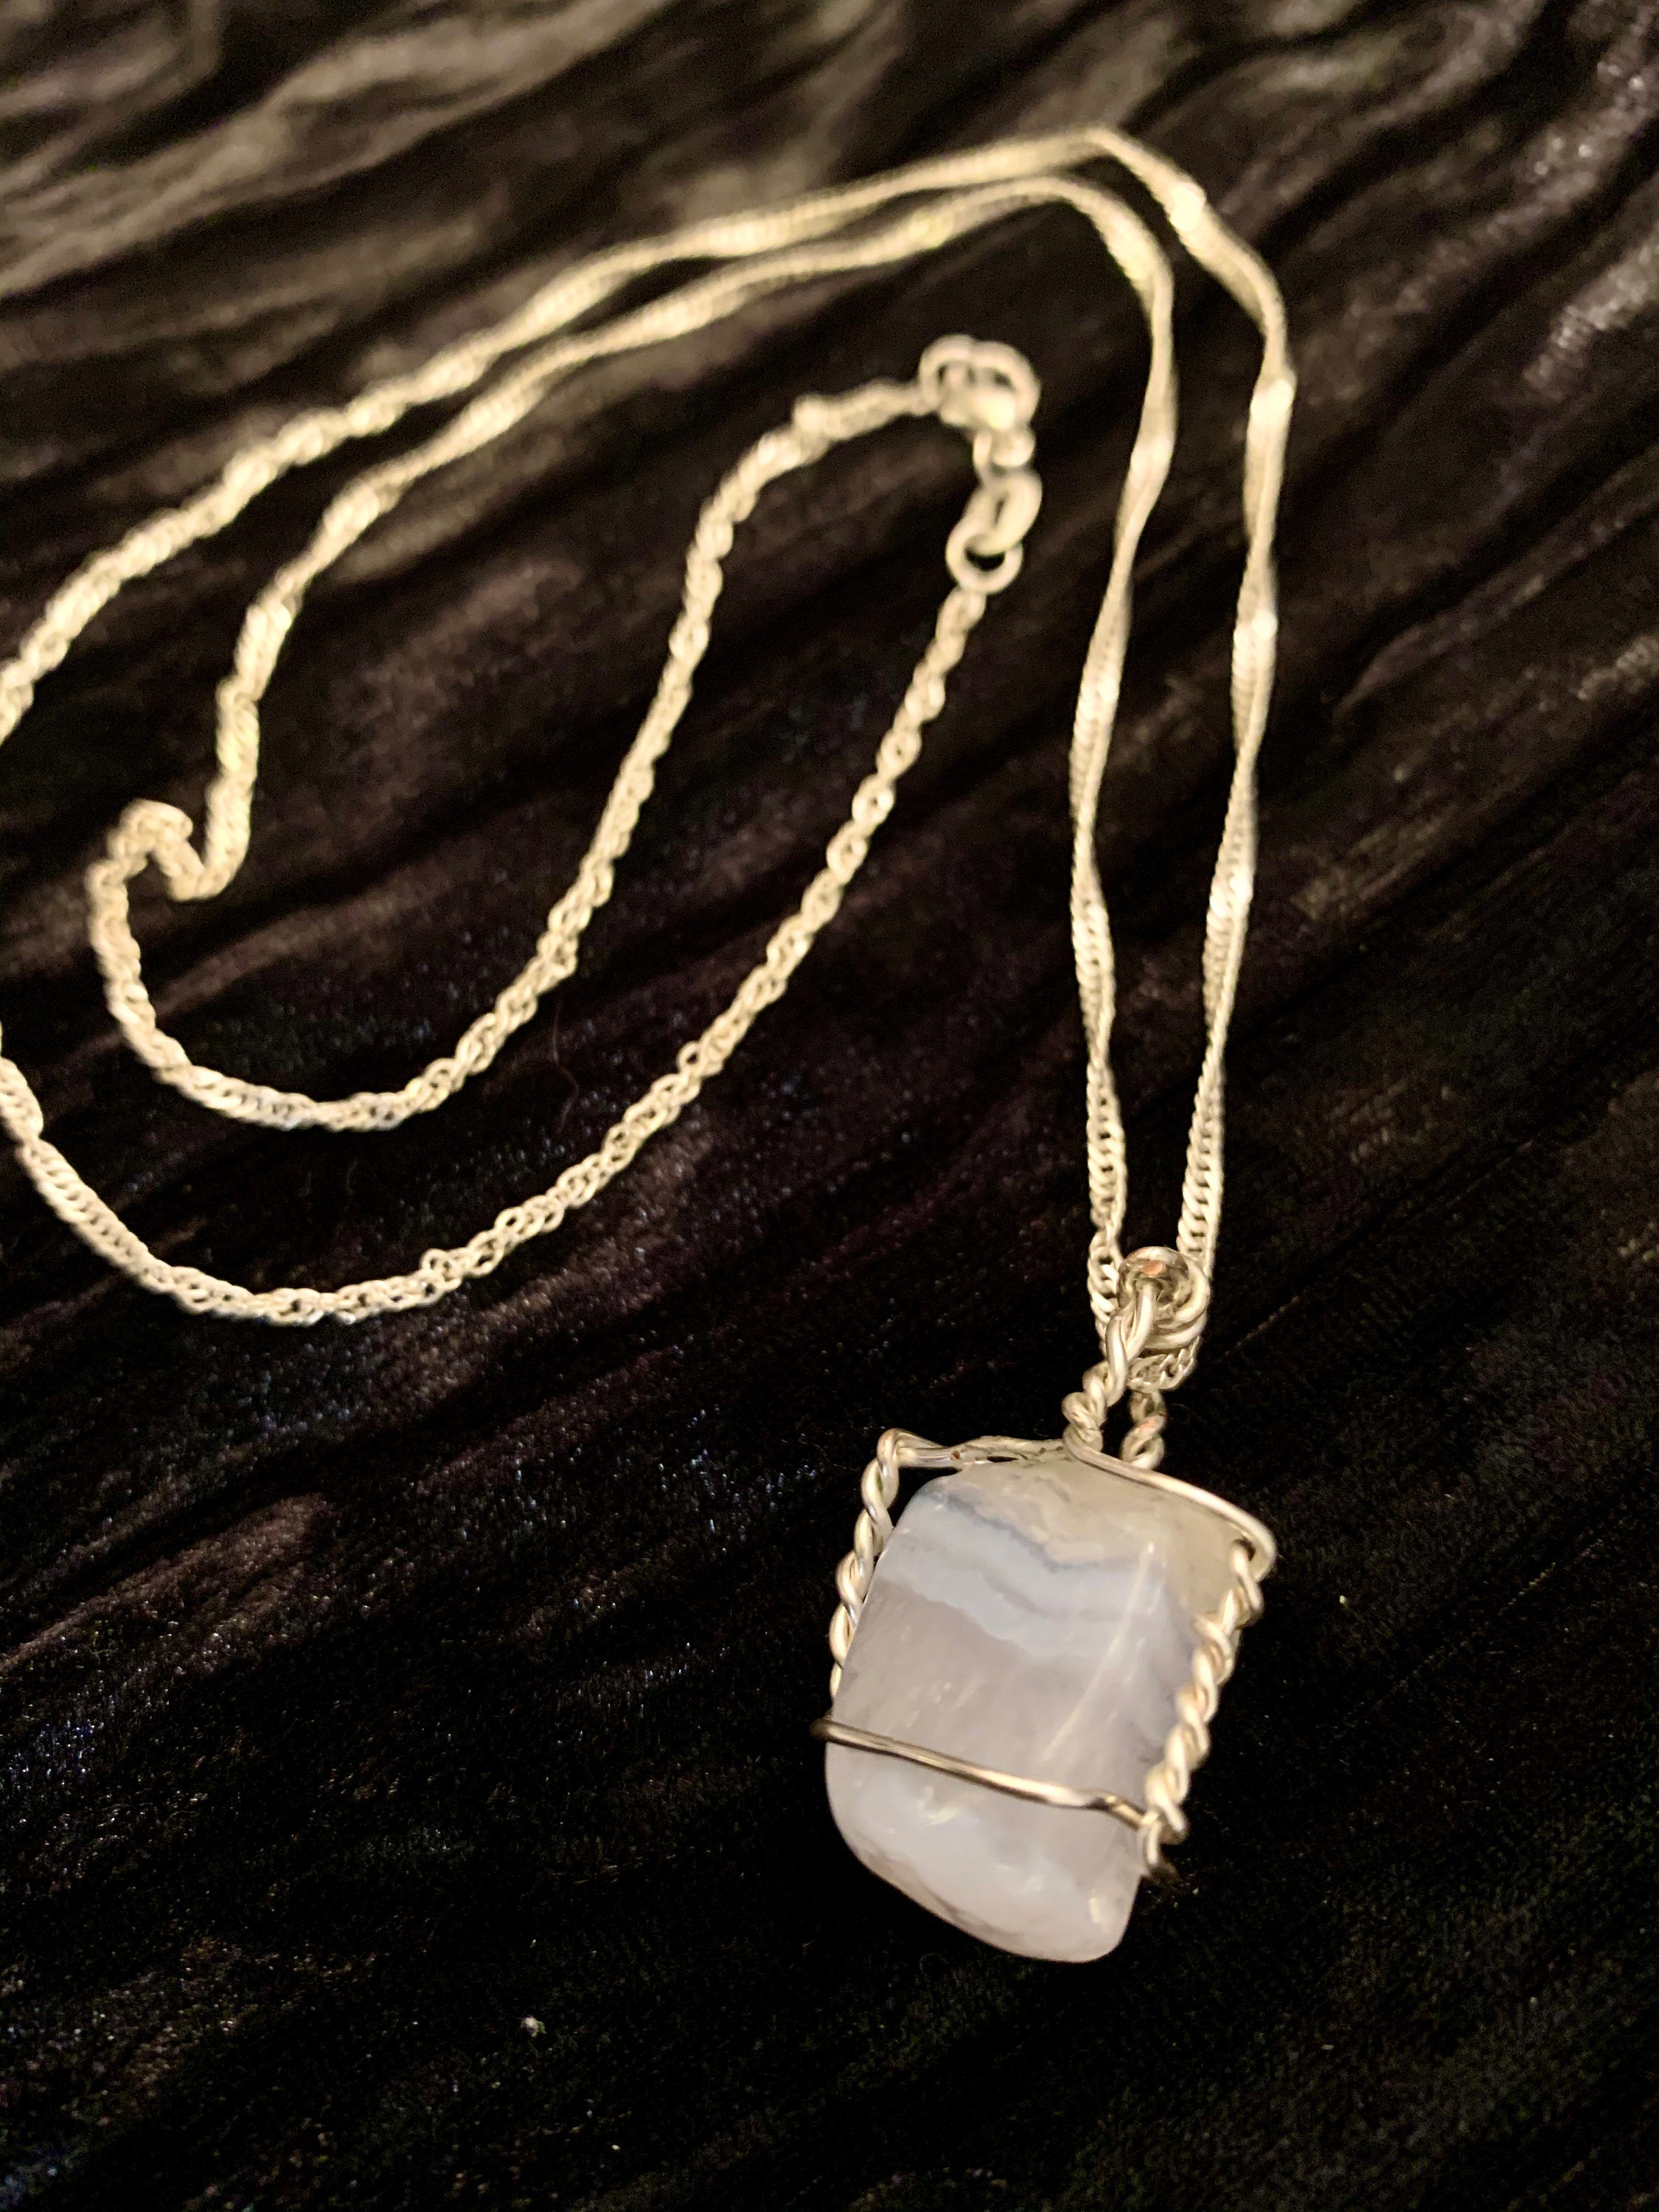 Blue Lace Agate Crystal Necklace